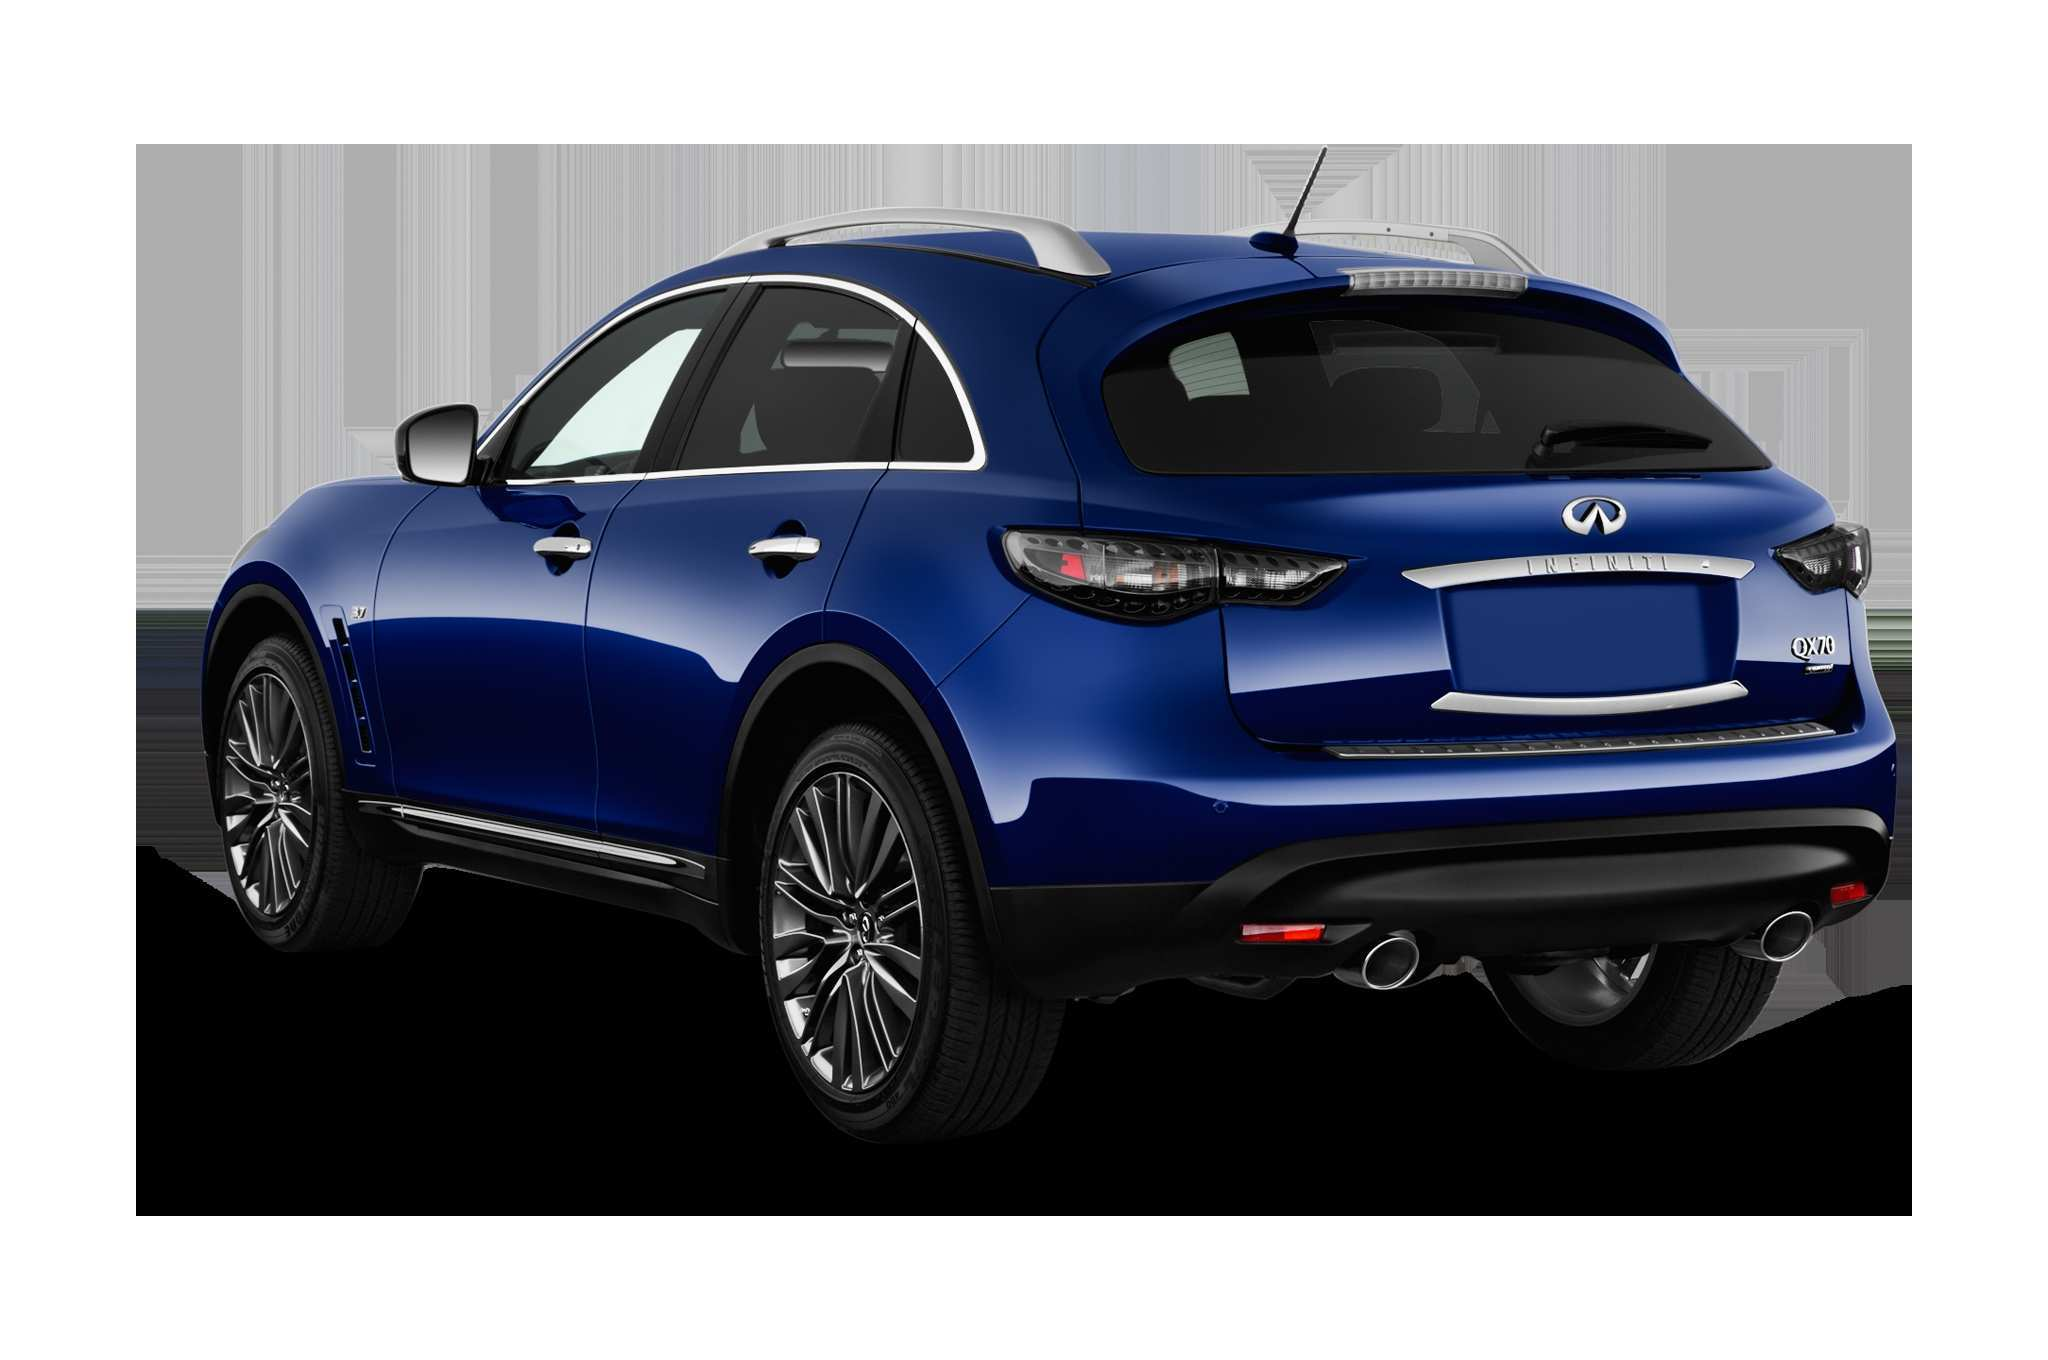 72 The 2019 Infiniti QX70 Redesign And Review